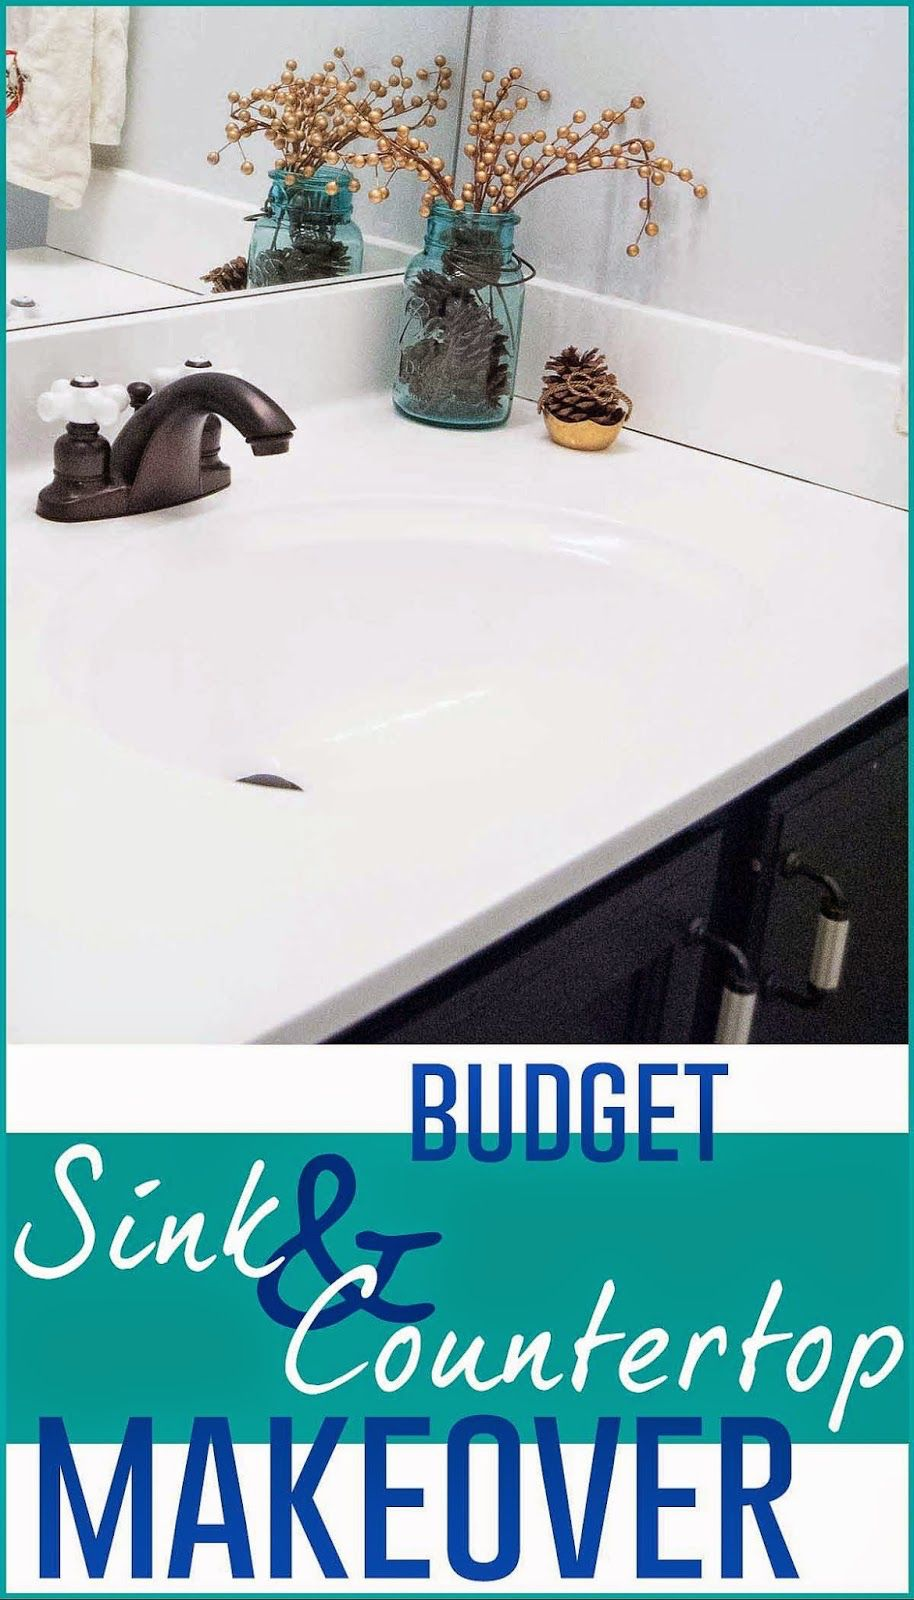 Painting a bathroom countertop | Countertop makeover, Sink ...